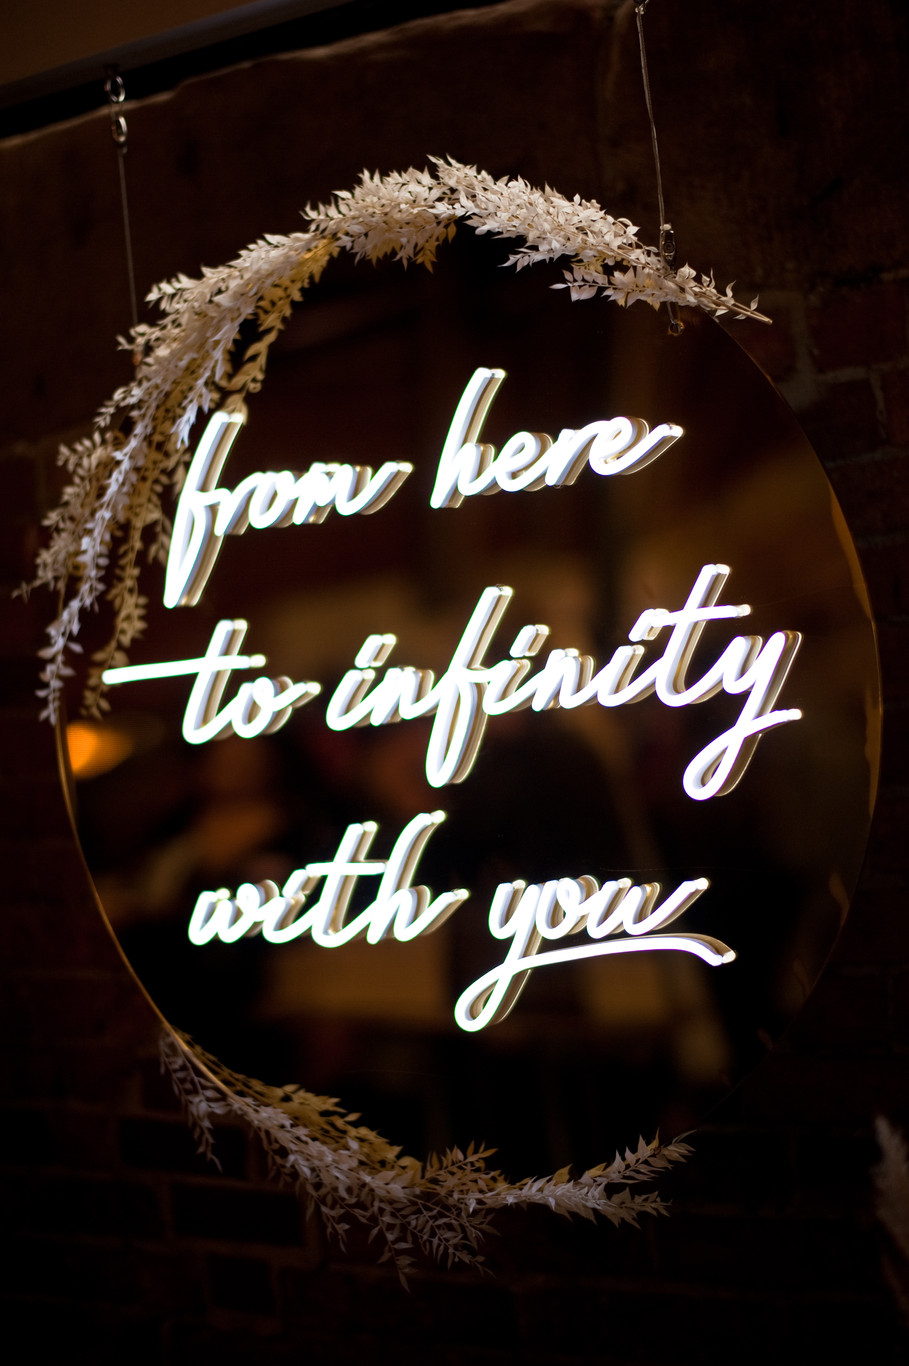 'From Here To Infinity With You' Gold Mirror Neon Sign